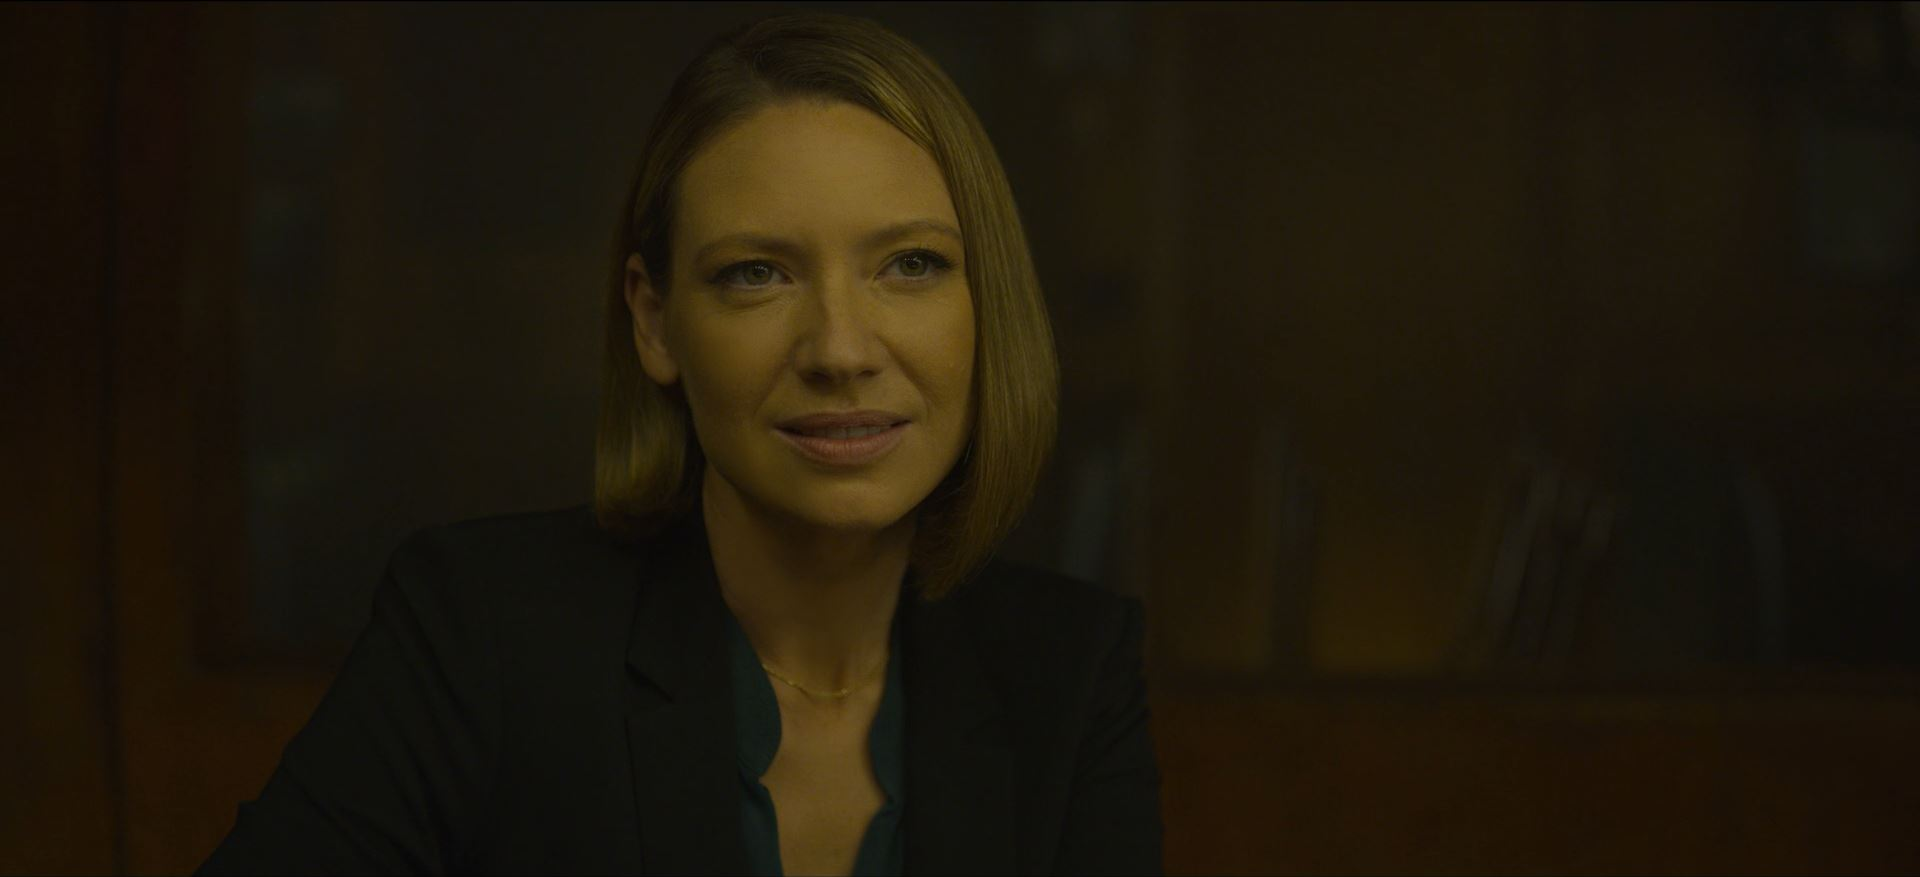 Mindhunter Season 2 Review - Anna Torv as Wendy Carr